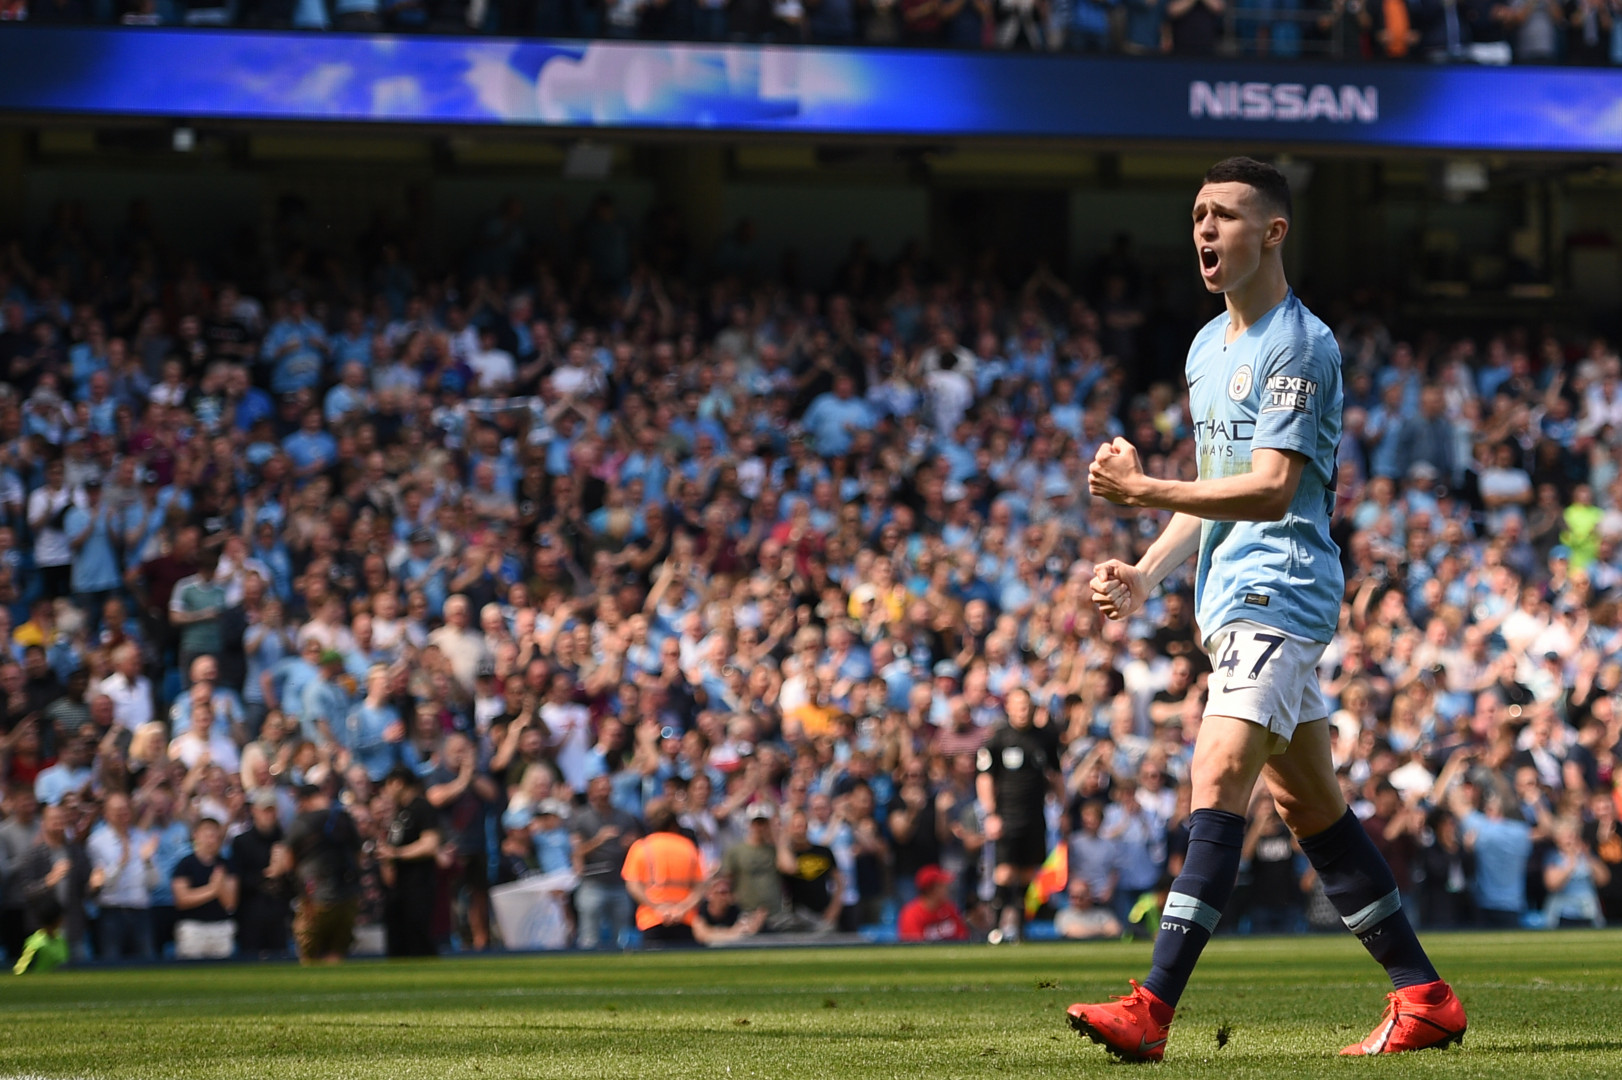 Phil Foden (19 ans, Angleterre) avec Manchester City le 20 avril 2019